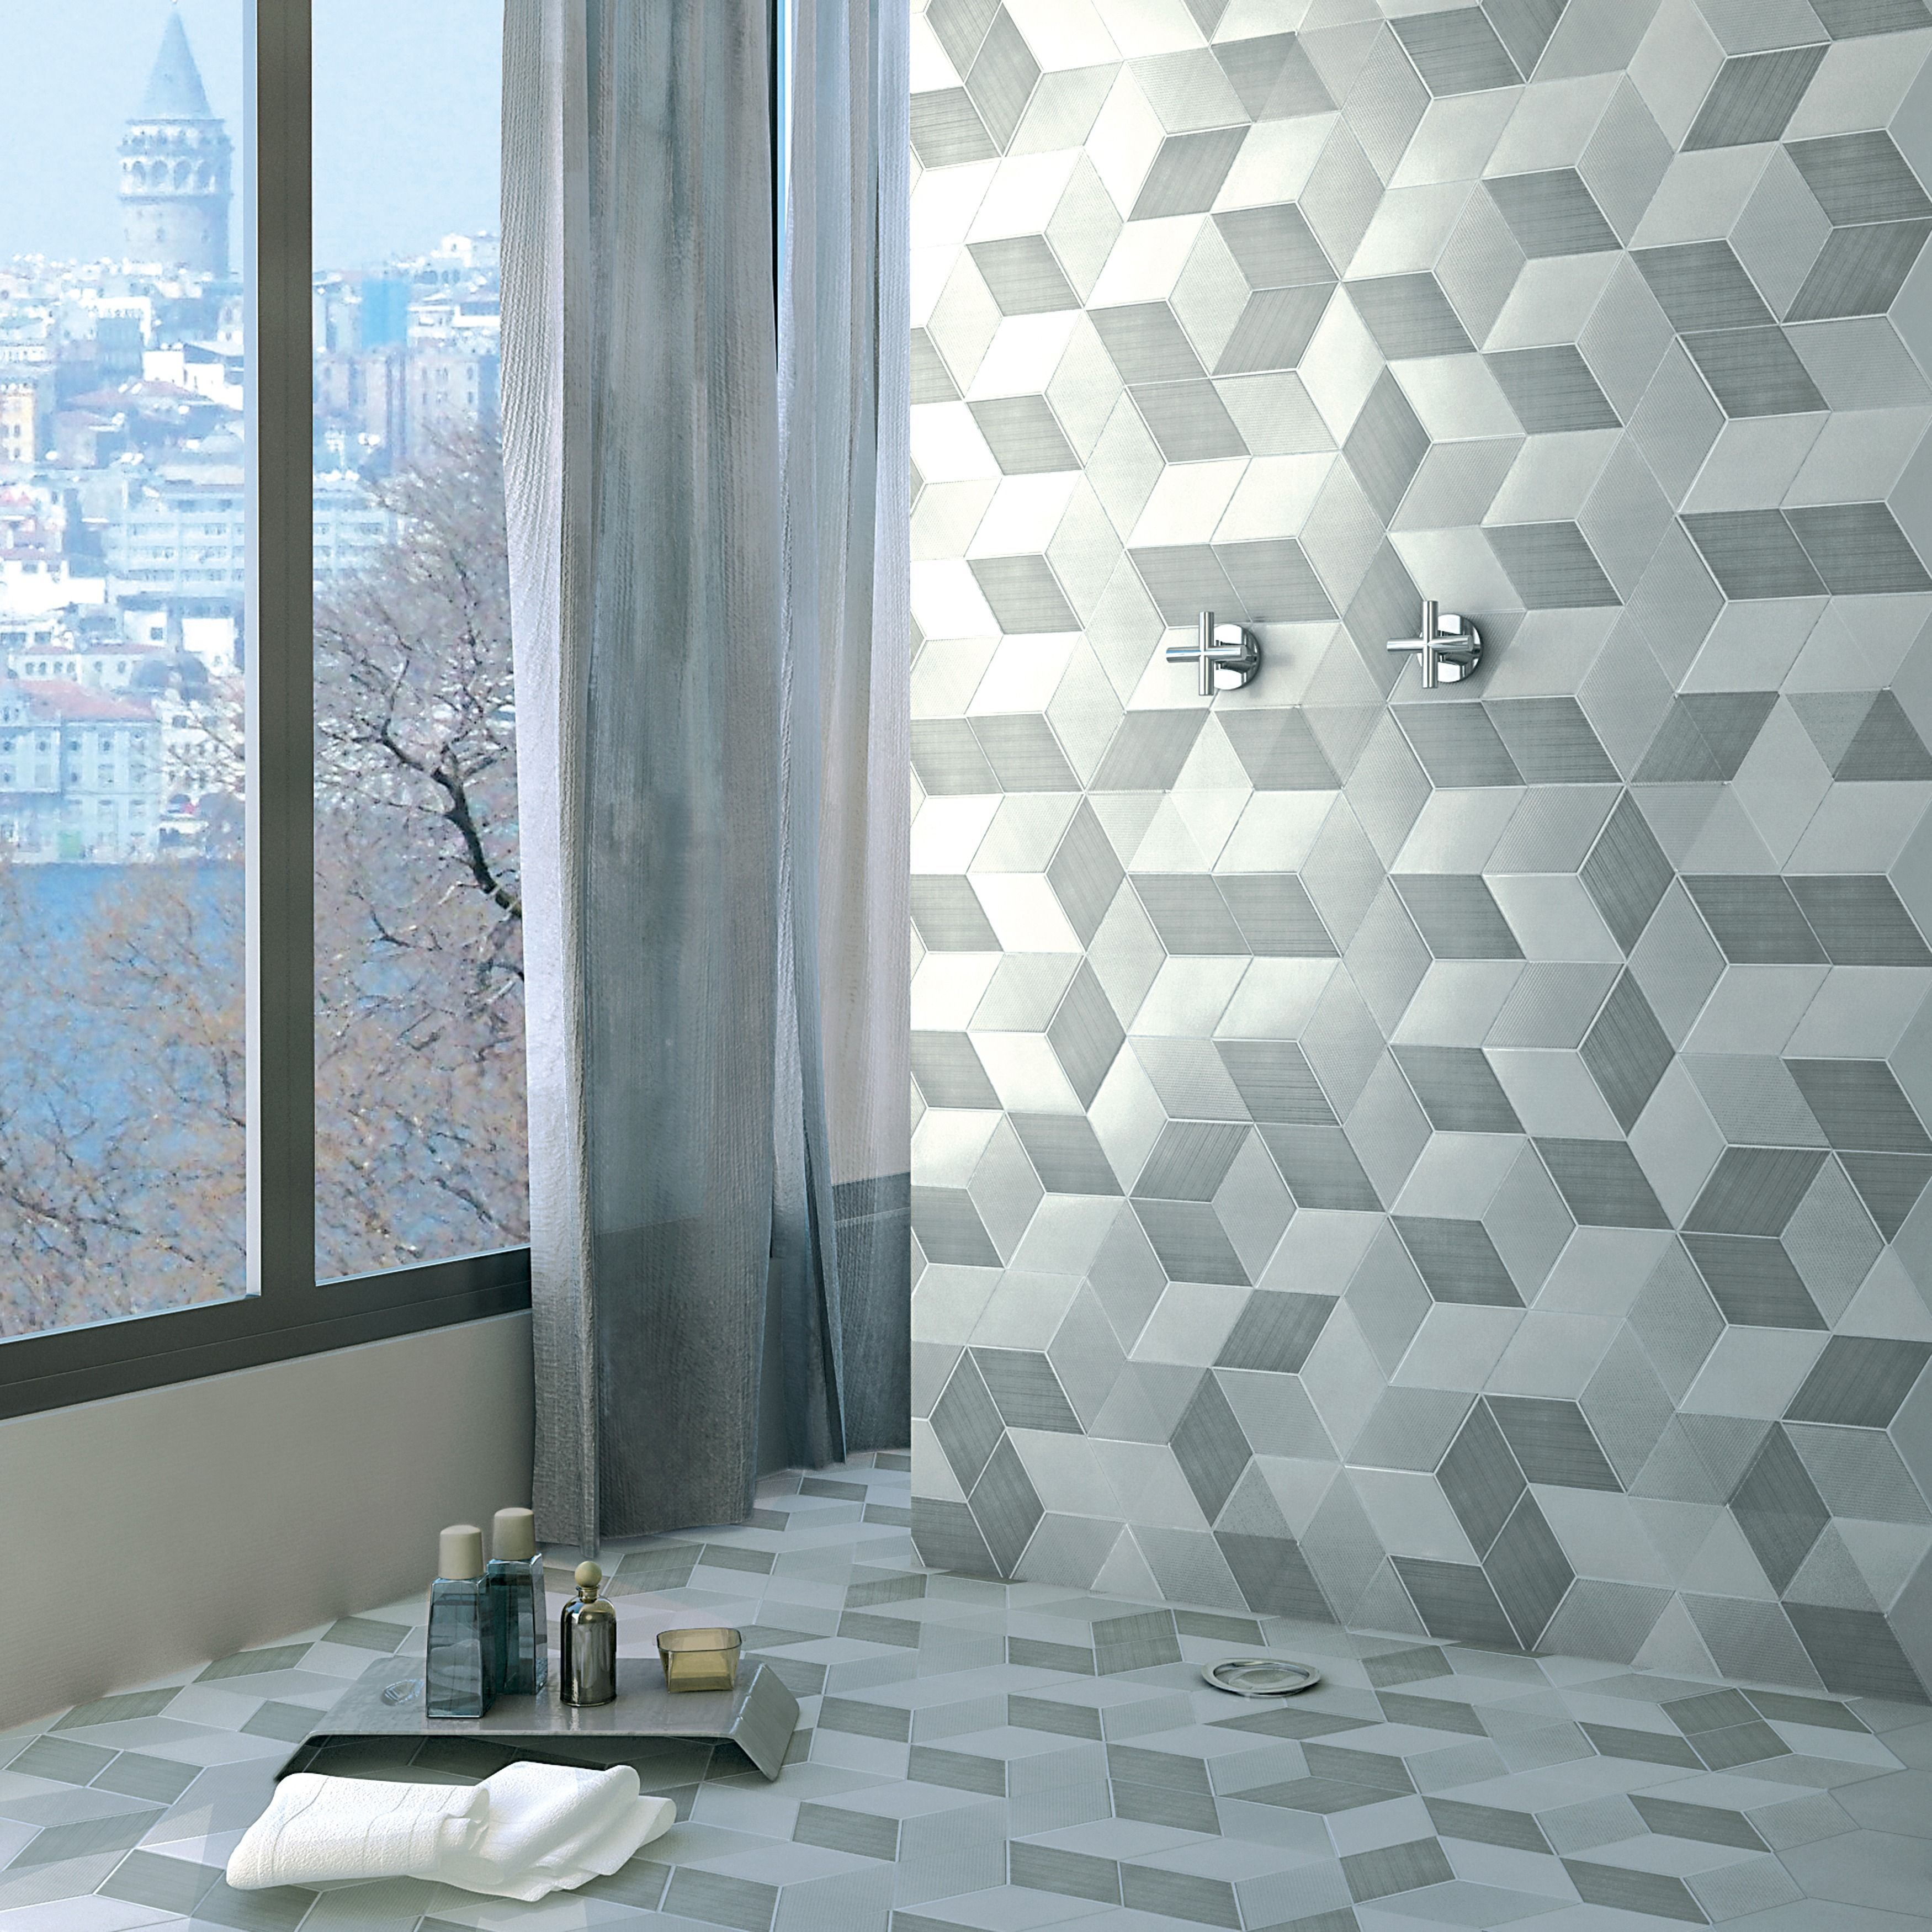 Overstock Com Online Shopping Bedding Furniture Electronics Jewelry Clothing More Porcelain Flooring Wall Tiles Floor And Wall Tile